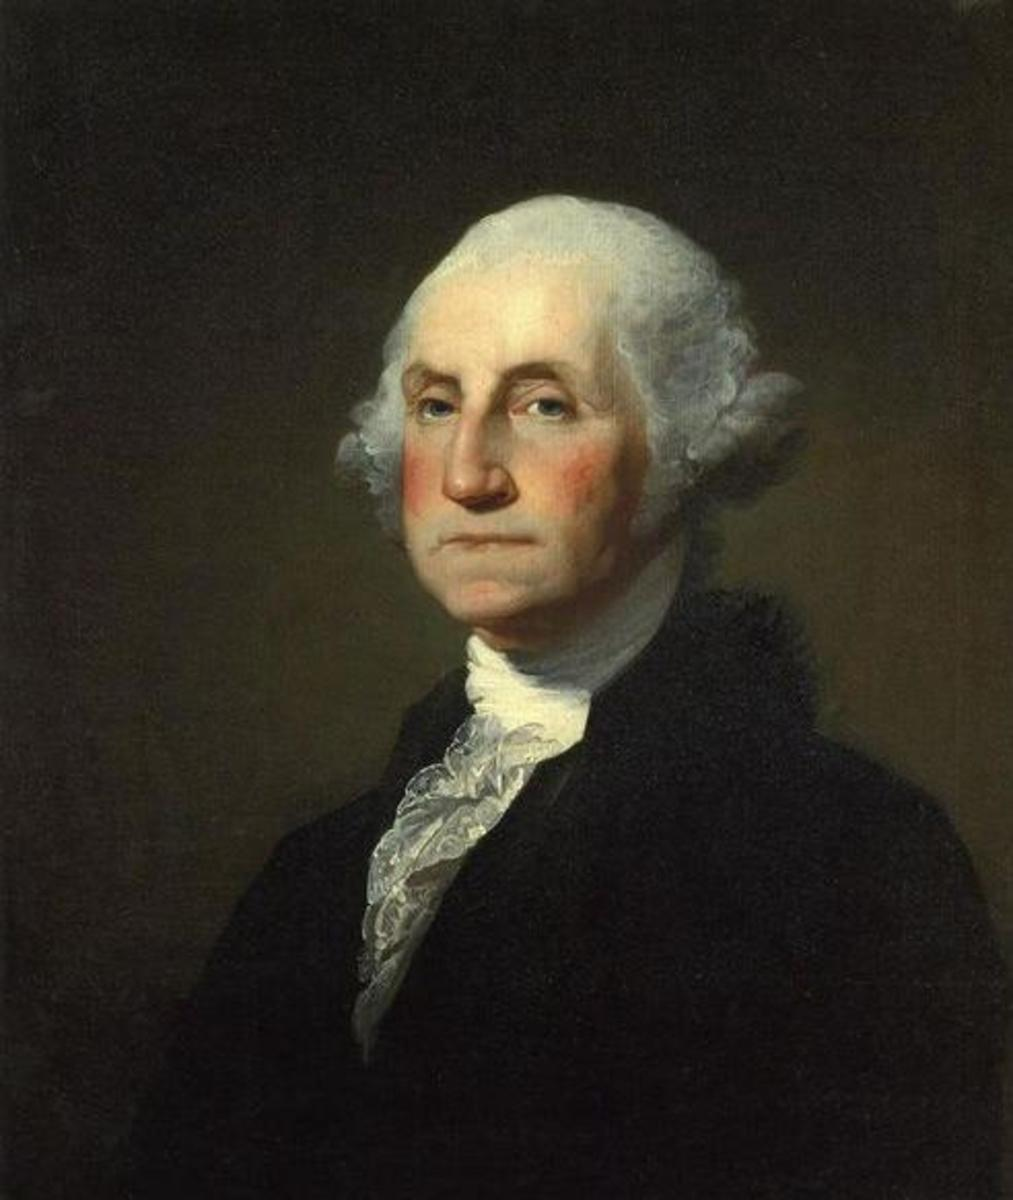 Portrait of Gilbert Stewart and Rembrandt Peale  (Public Domain photo courtesy of WikiPedia.org http://en.wikipedia.org/wiki/File:Gilbert_Stuart_Williamstown_Portrait_of_George_Washington.jpg )